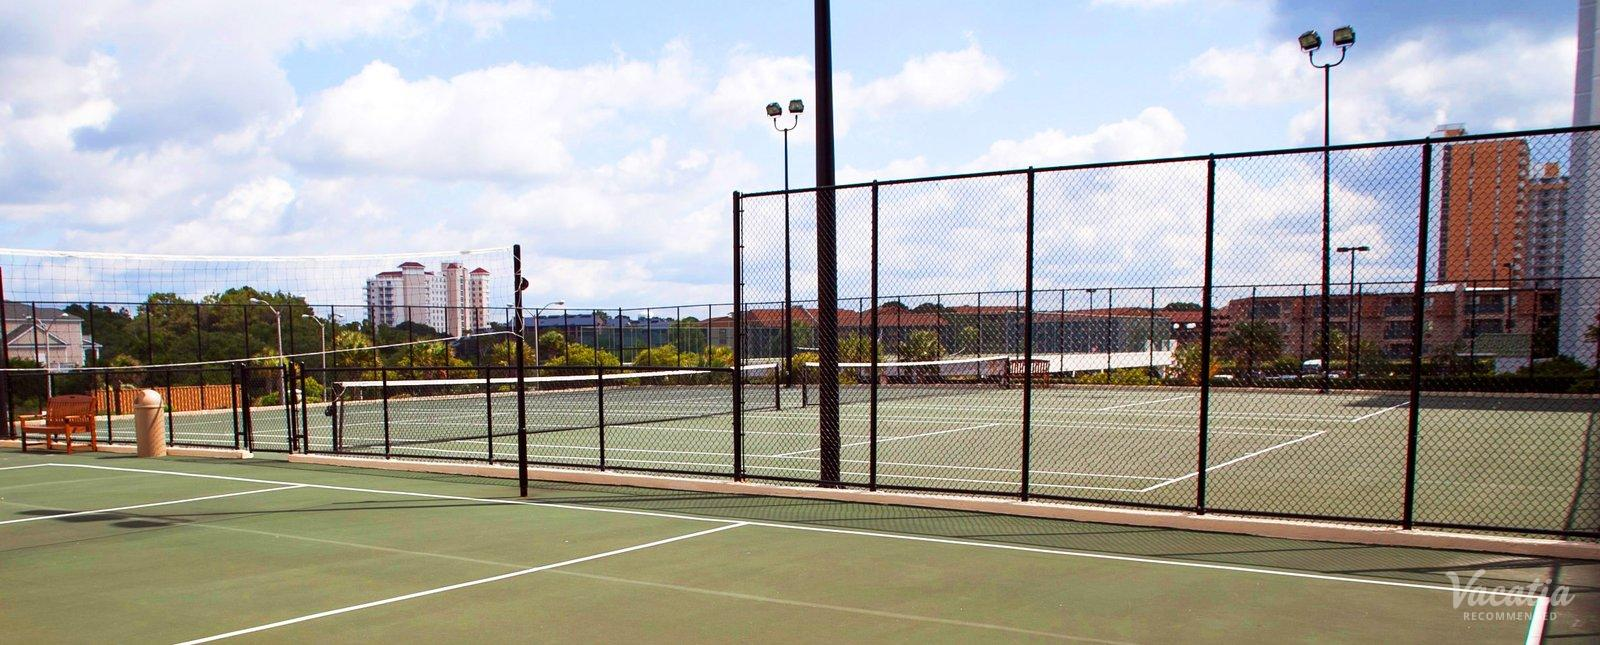 Sands Beach Club resort tennis courts